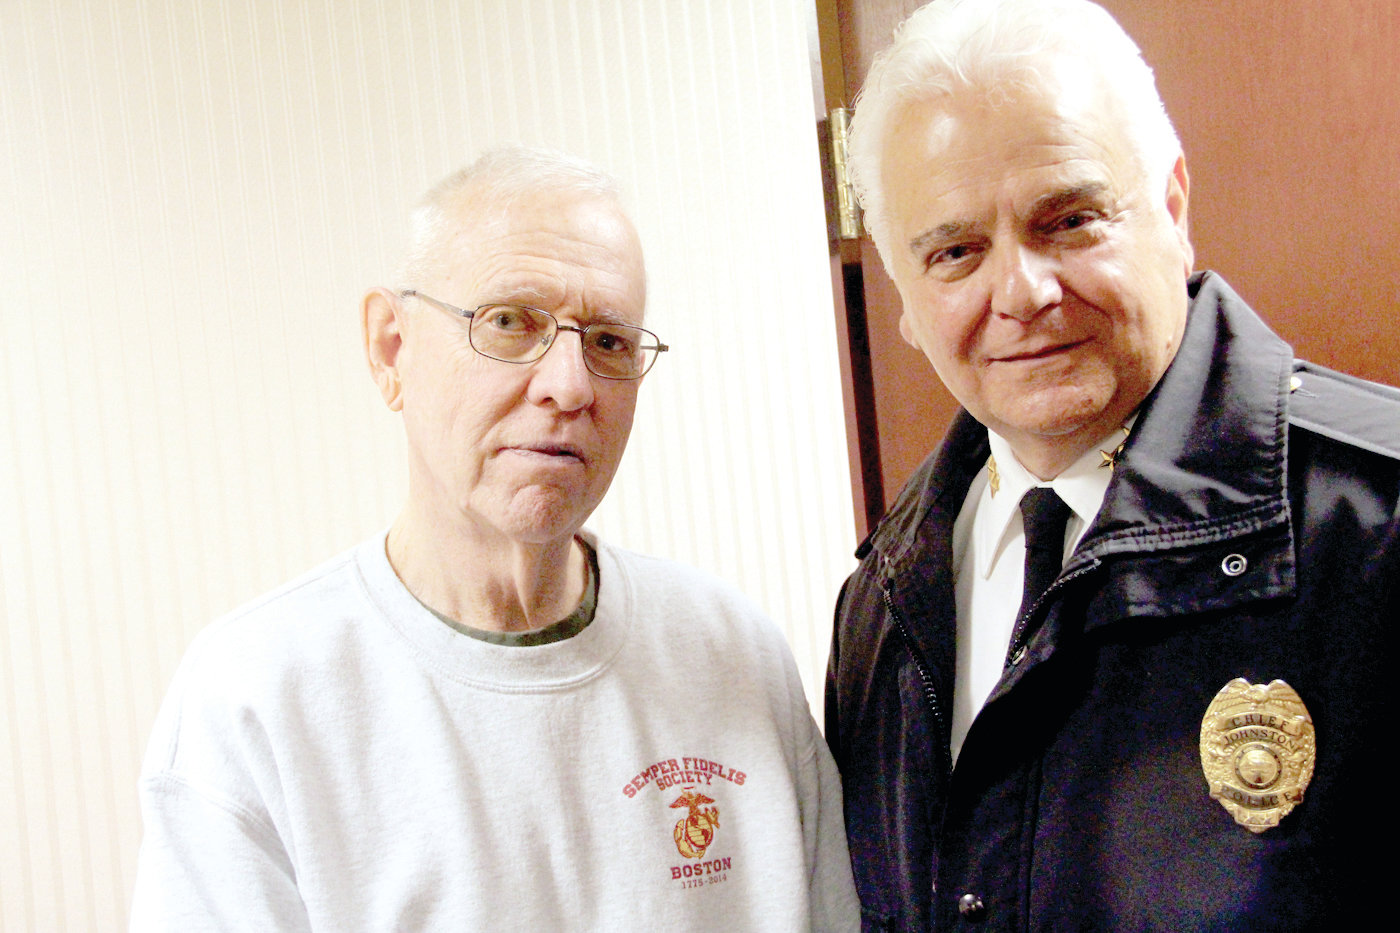 BUILDING TRUST: Johnston Police Chief Richard Tamburini, pictured at right with retired Warwick Police Chief Stephen McCartney, said the camera registry program is about fostering trust with the town.